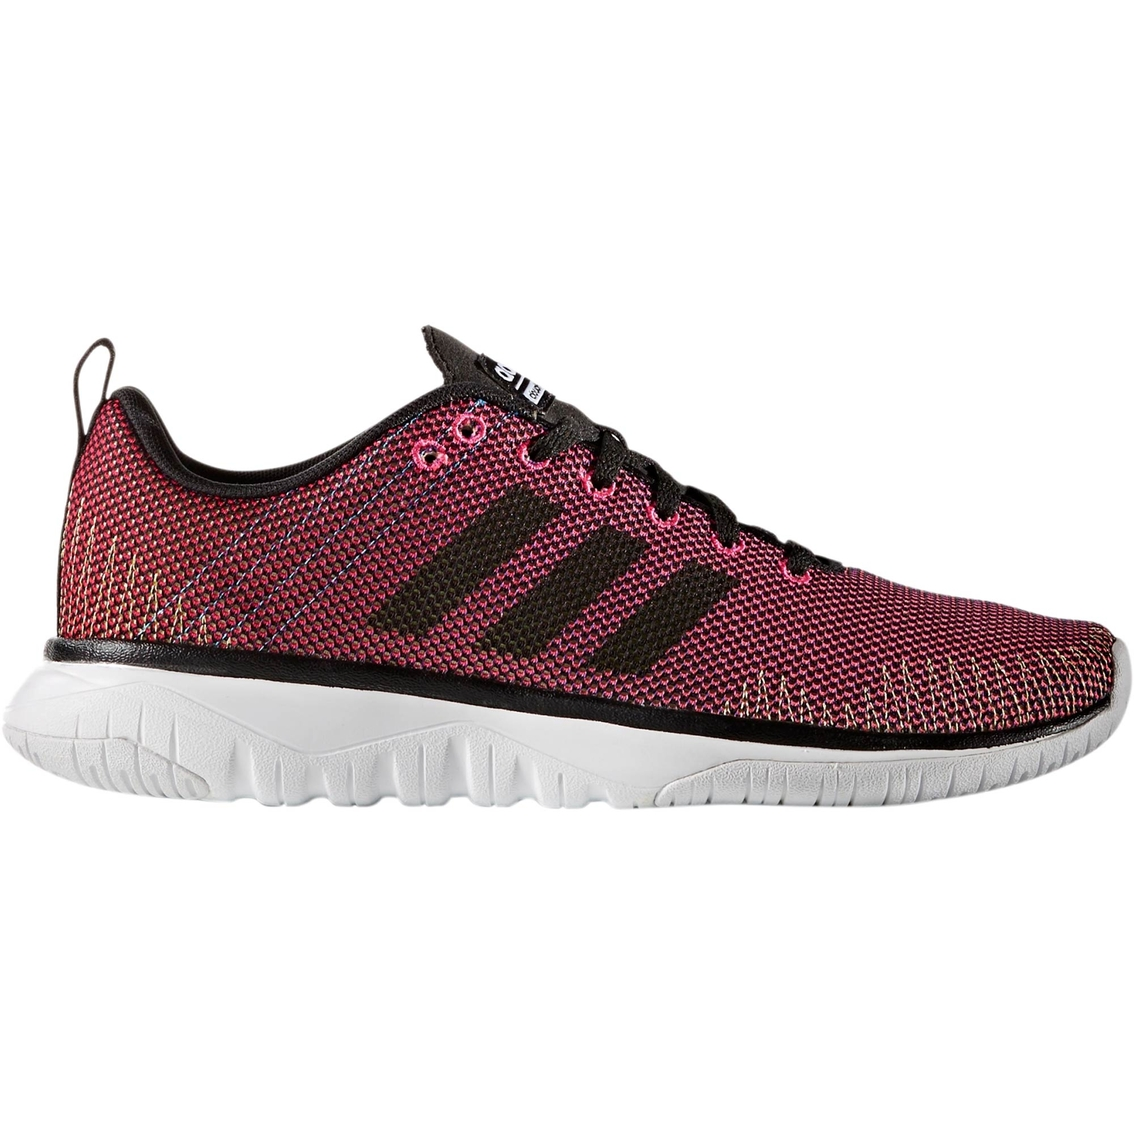 adidas donne cloudfoam super flex scarpe da corsa, running back